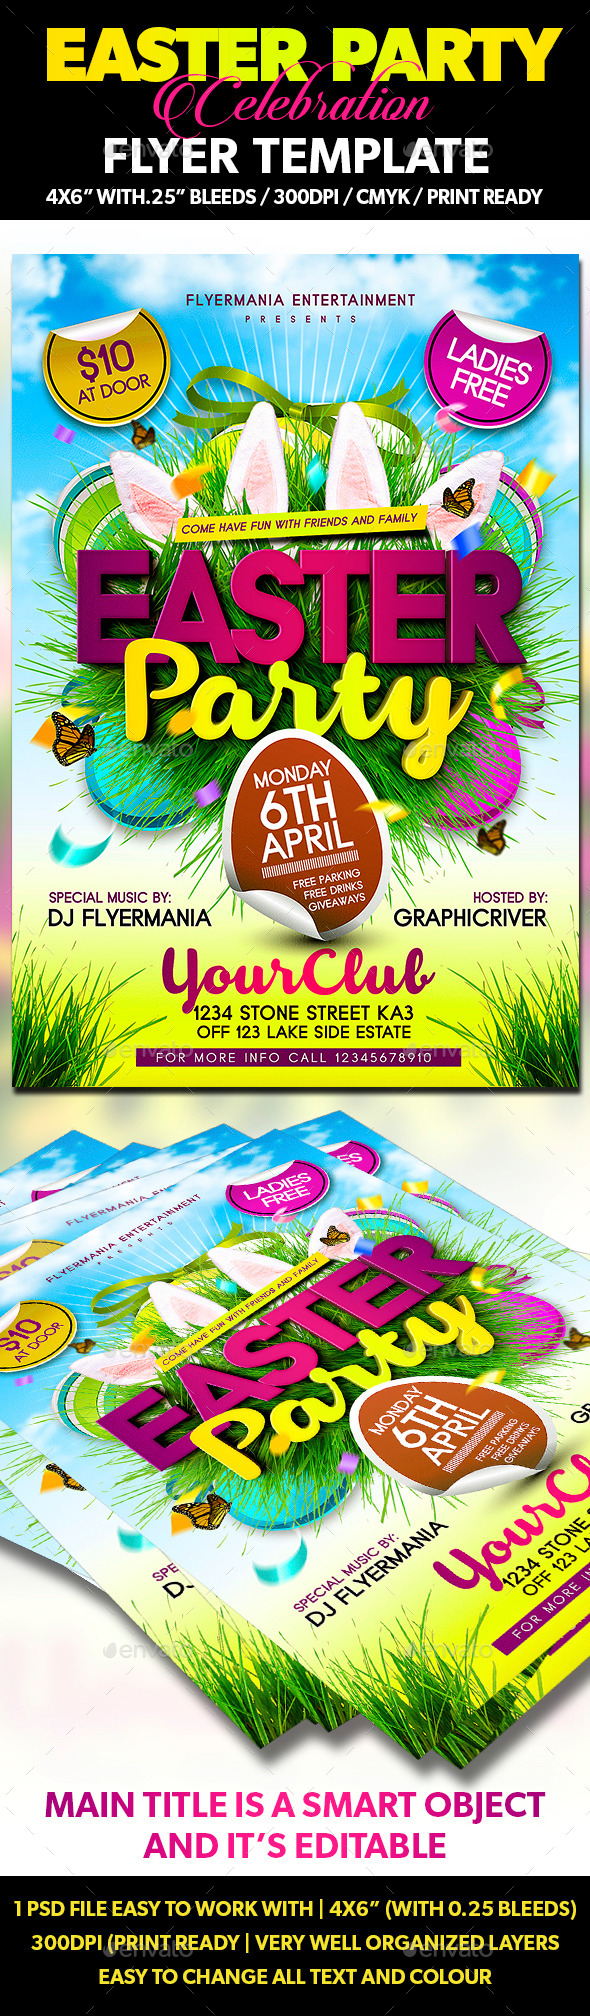 GraphicRiver Easter Party Flyer Template 10806150